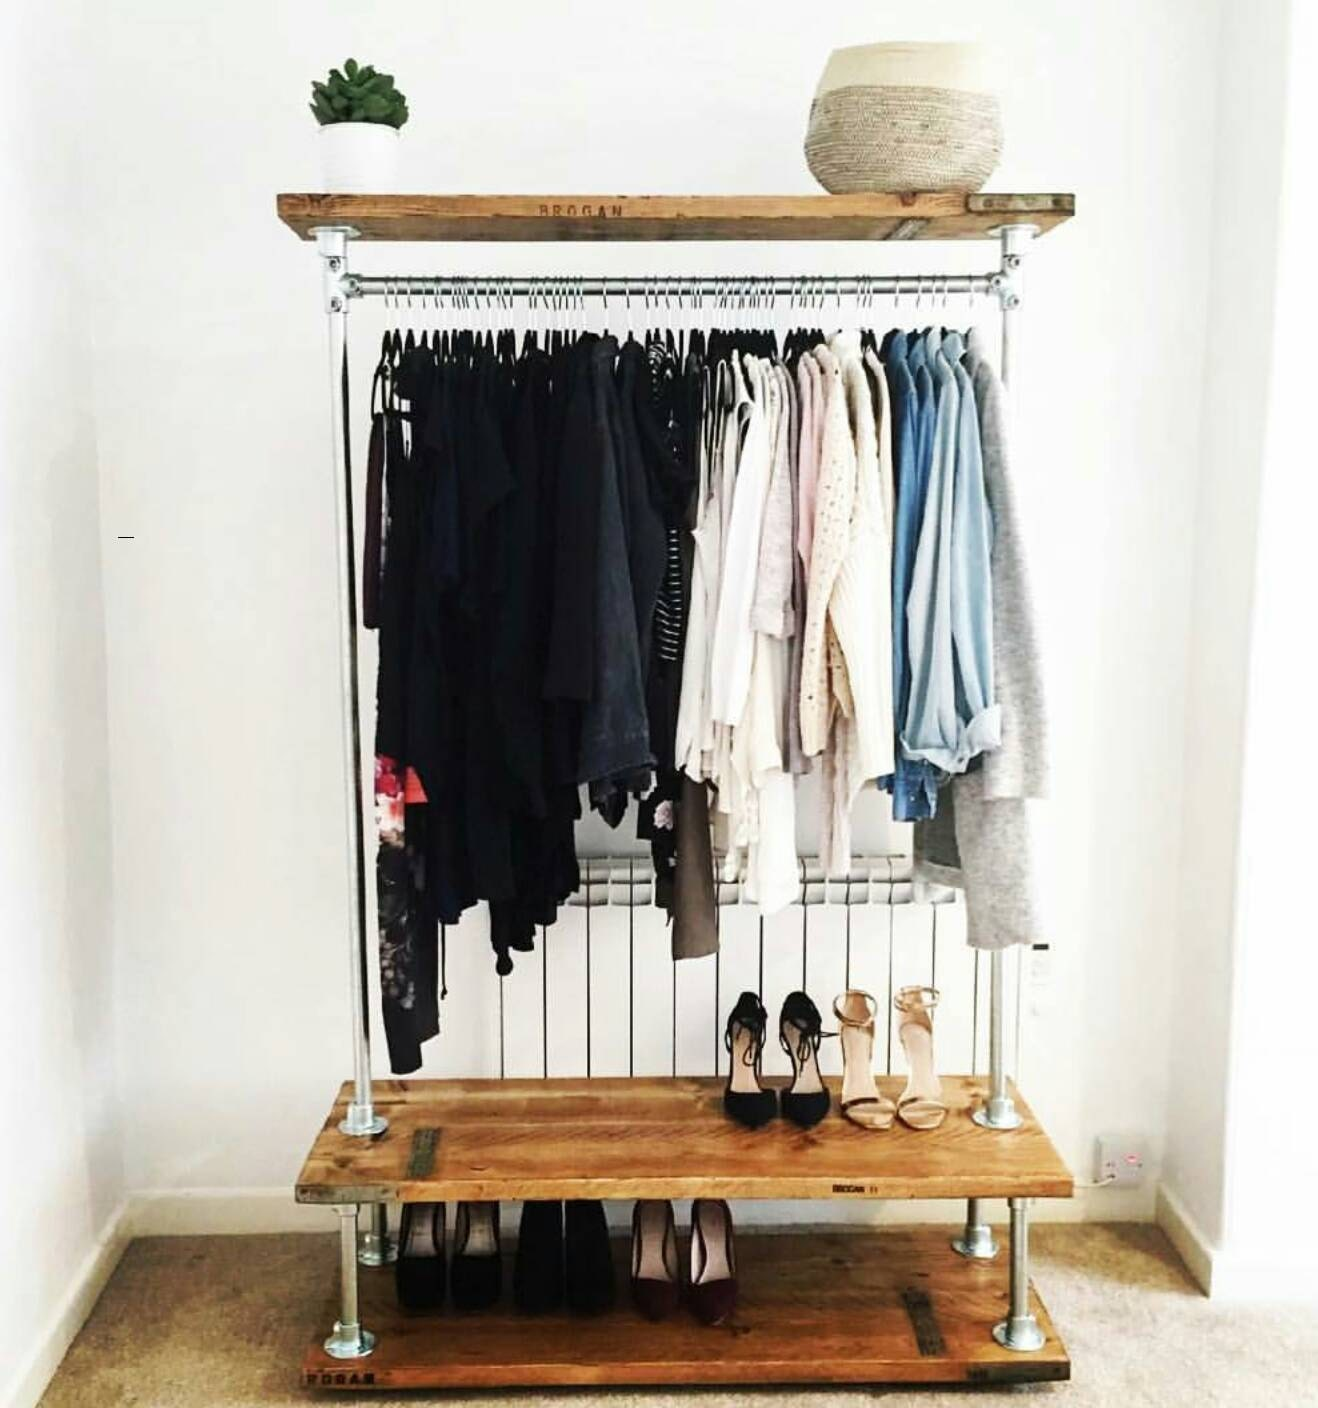 Vintage industrial clothes rail with storage shelves.